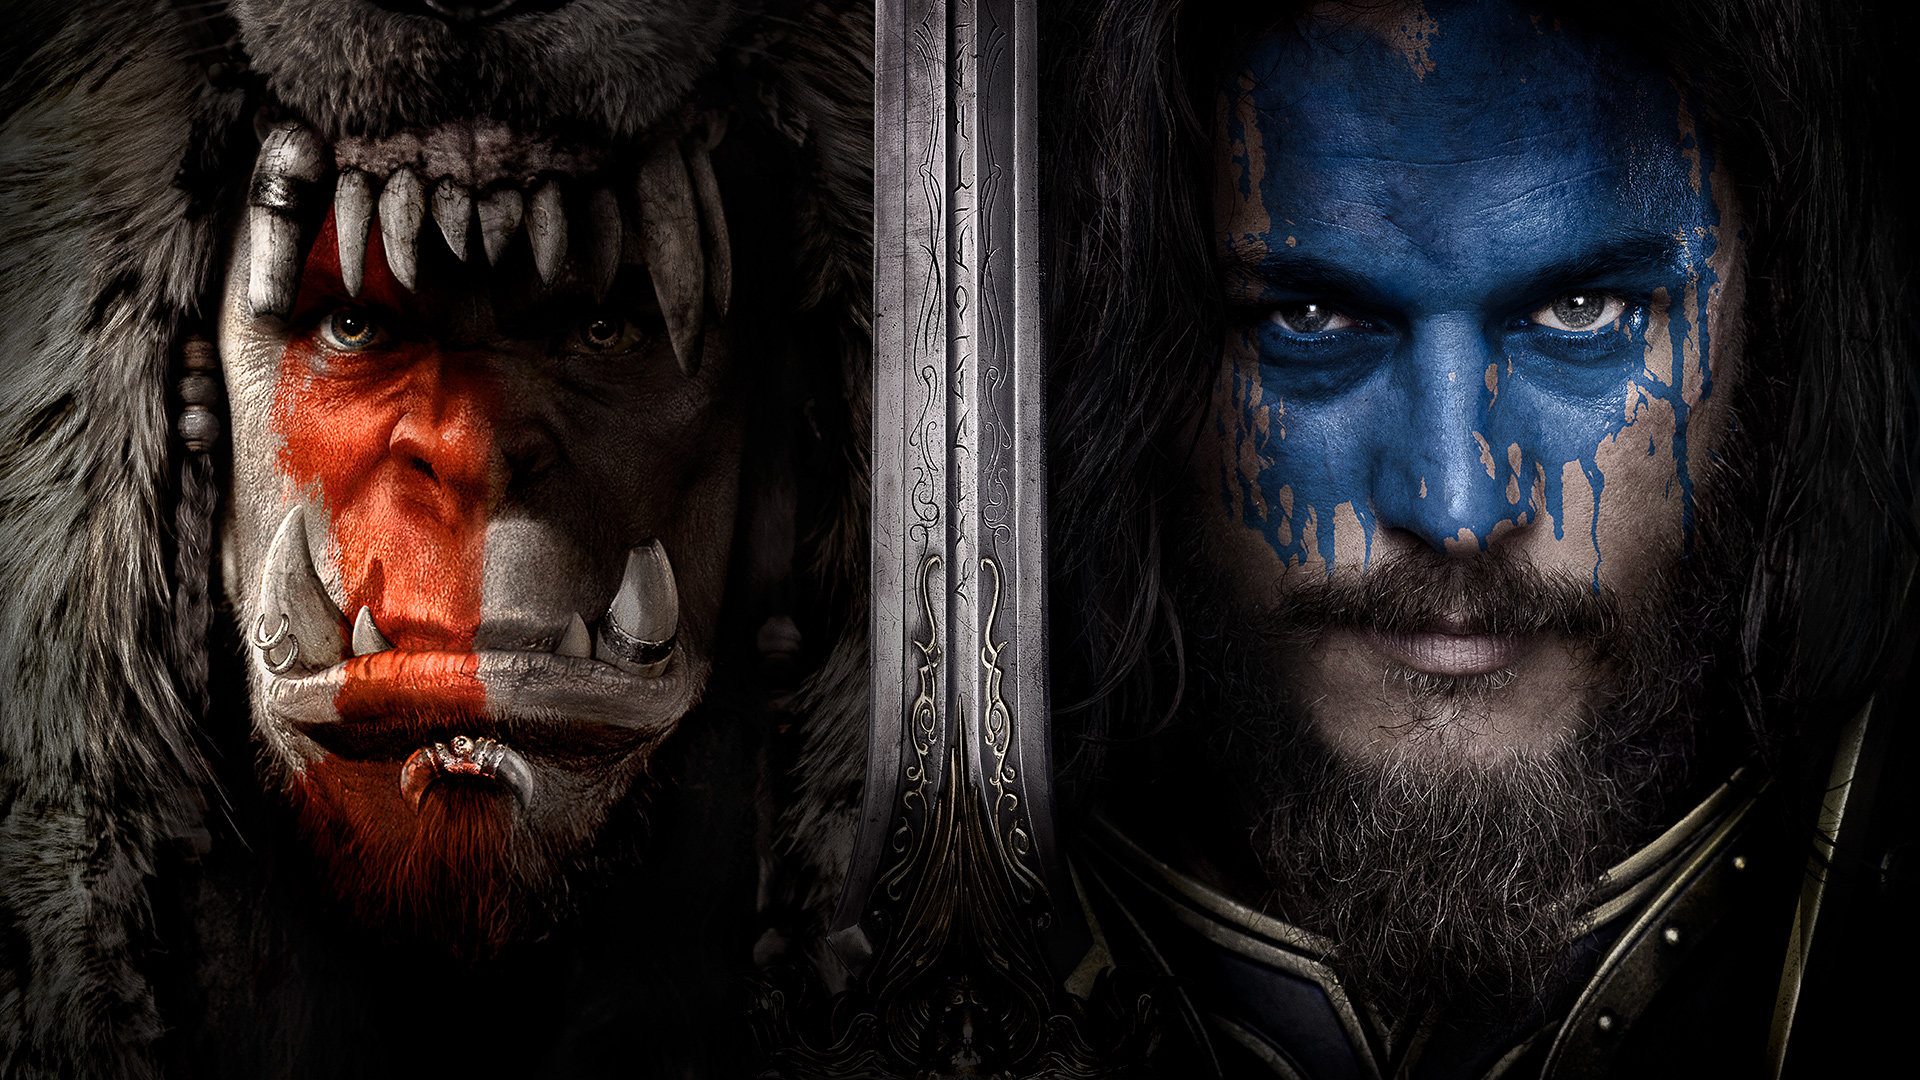 warcraft full movie download hd